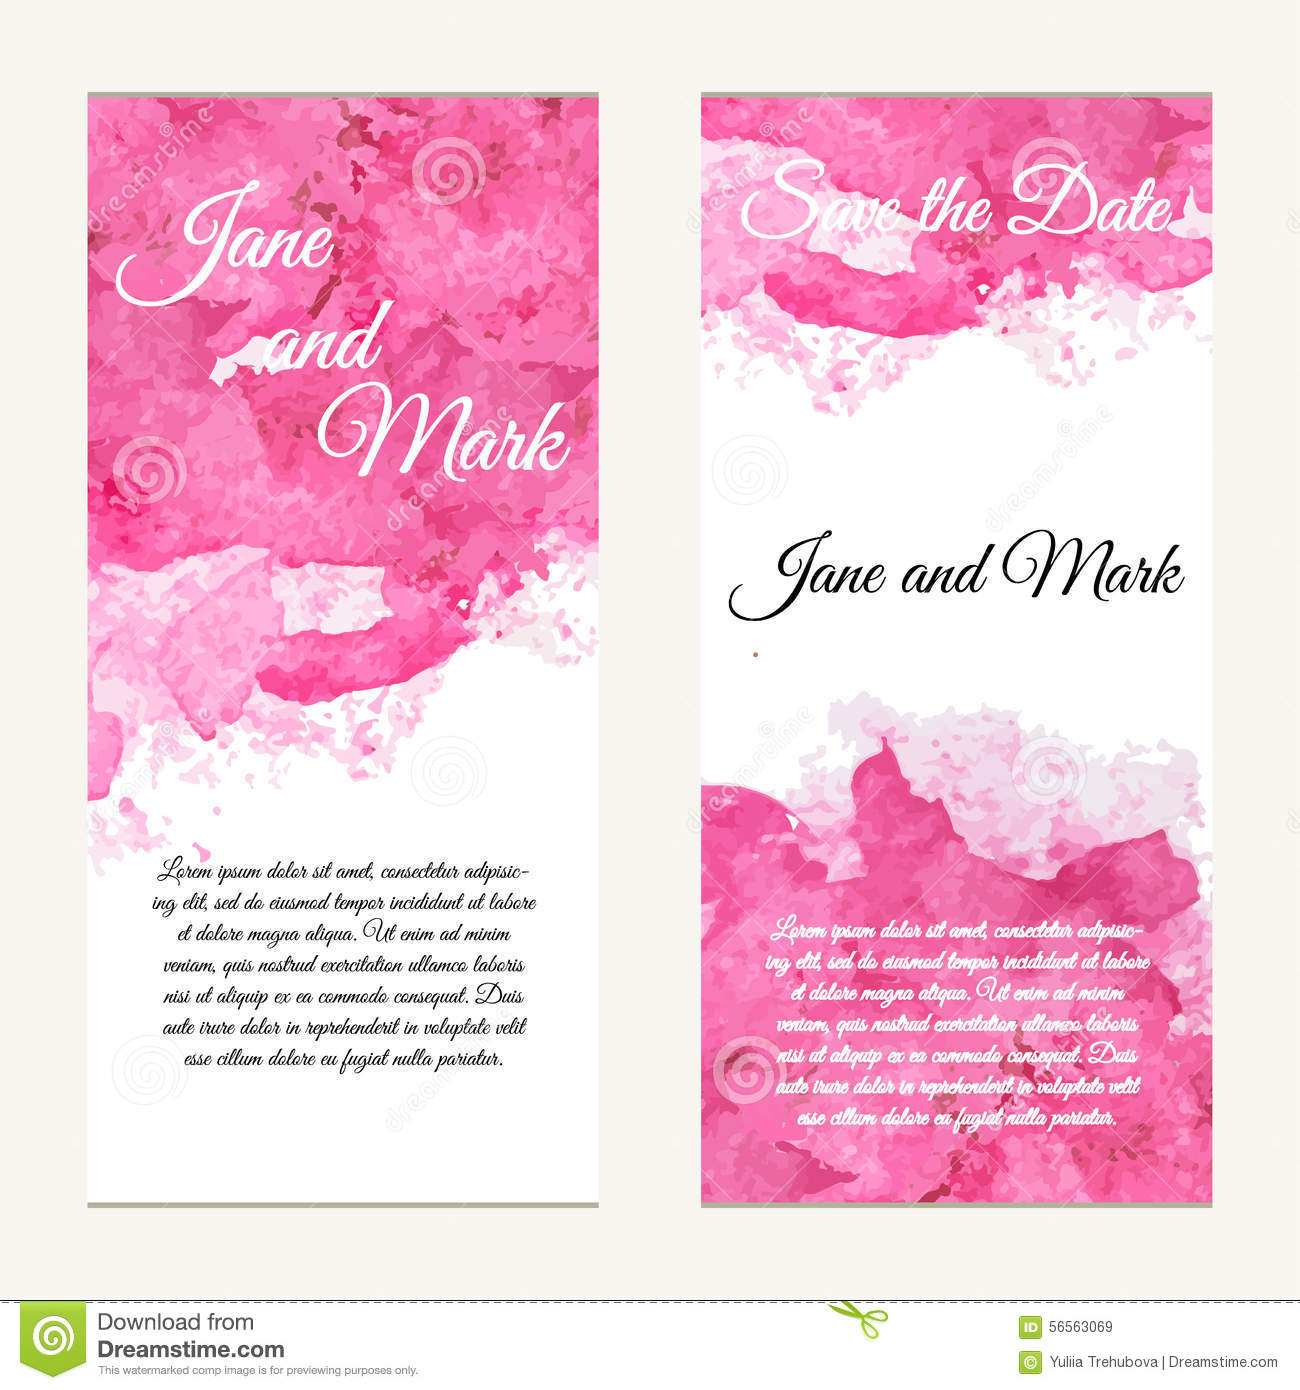 carte d 39 invitation sur le mariage anniversaire fond avec l 39 aquarelle illustration de vecteur. Black Bedroom Furniture Sets. Home Design Ideas